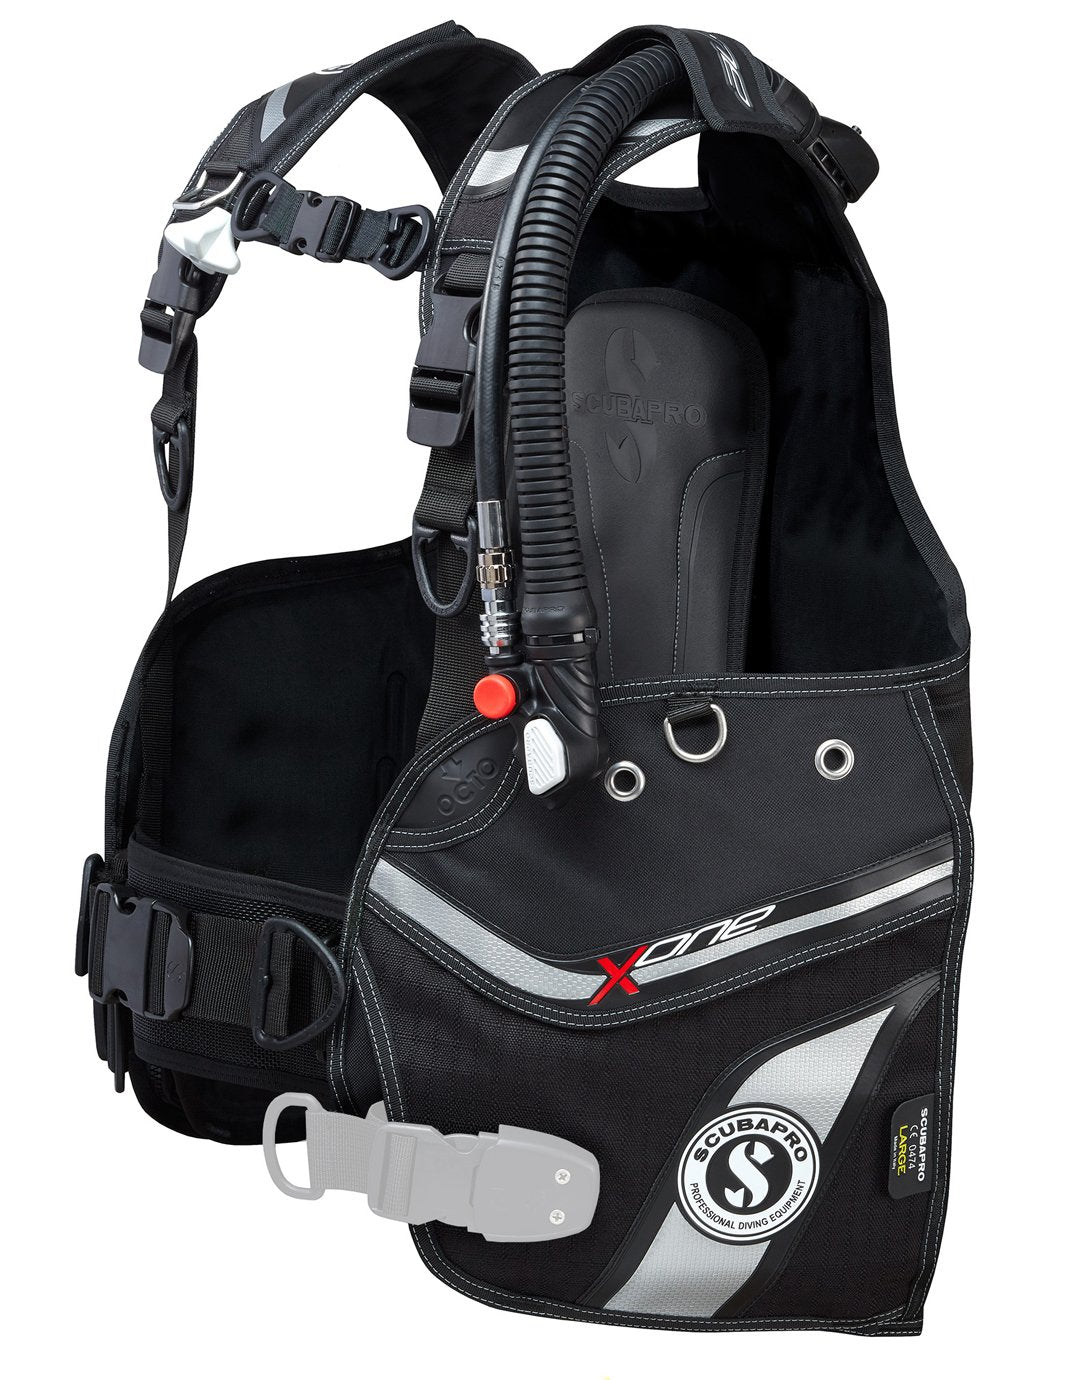 Image of Scubapro X-One BCD